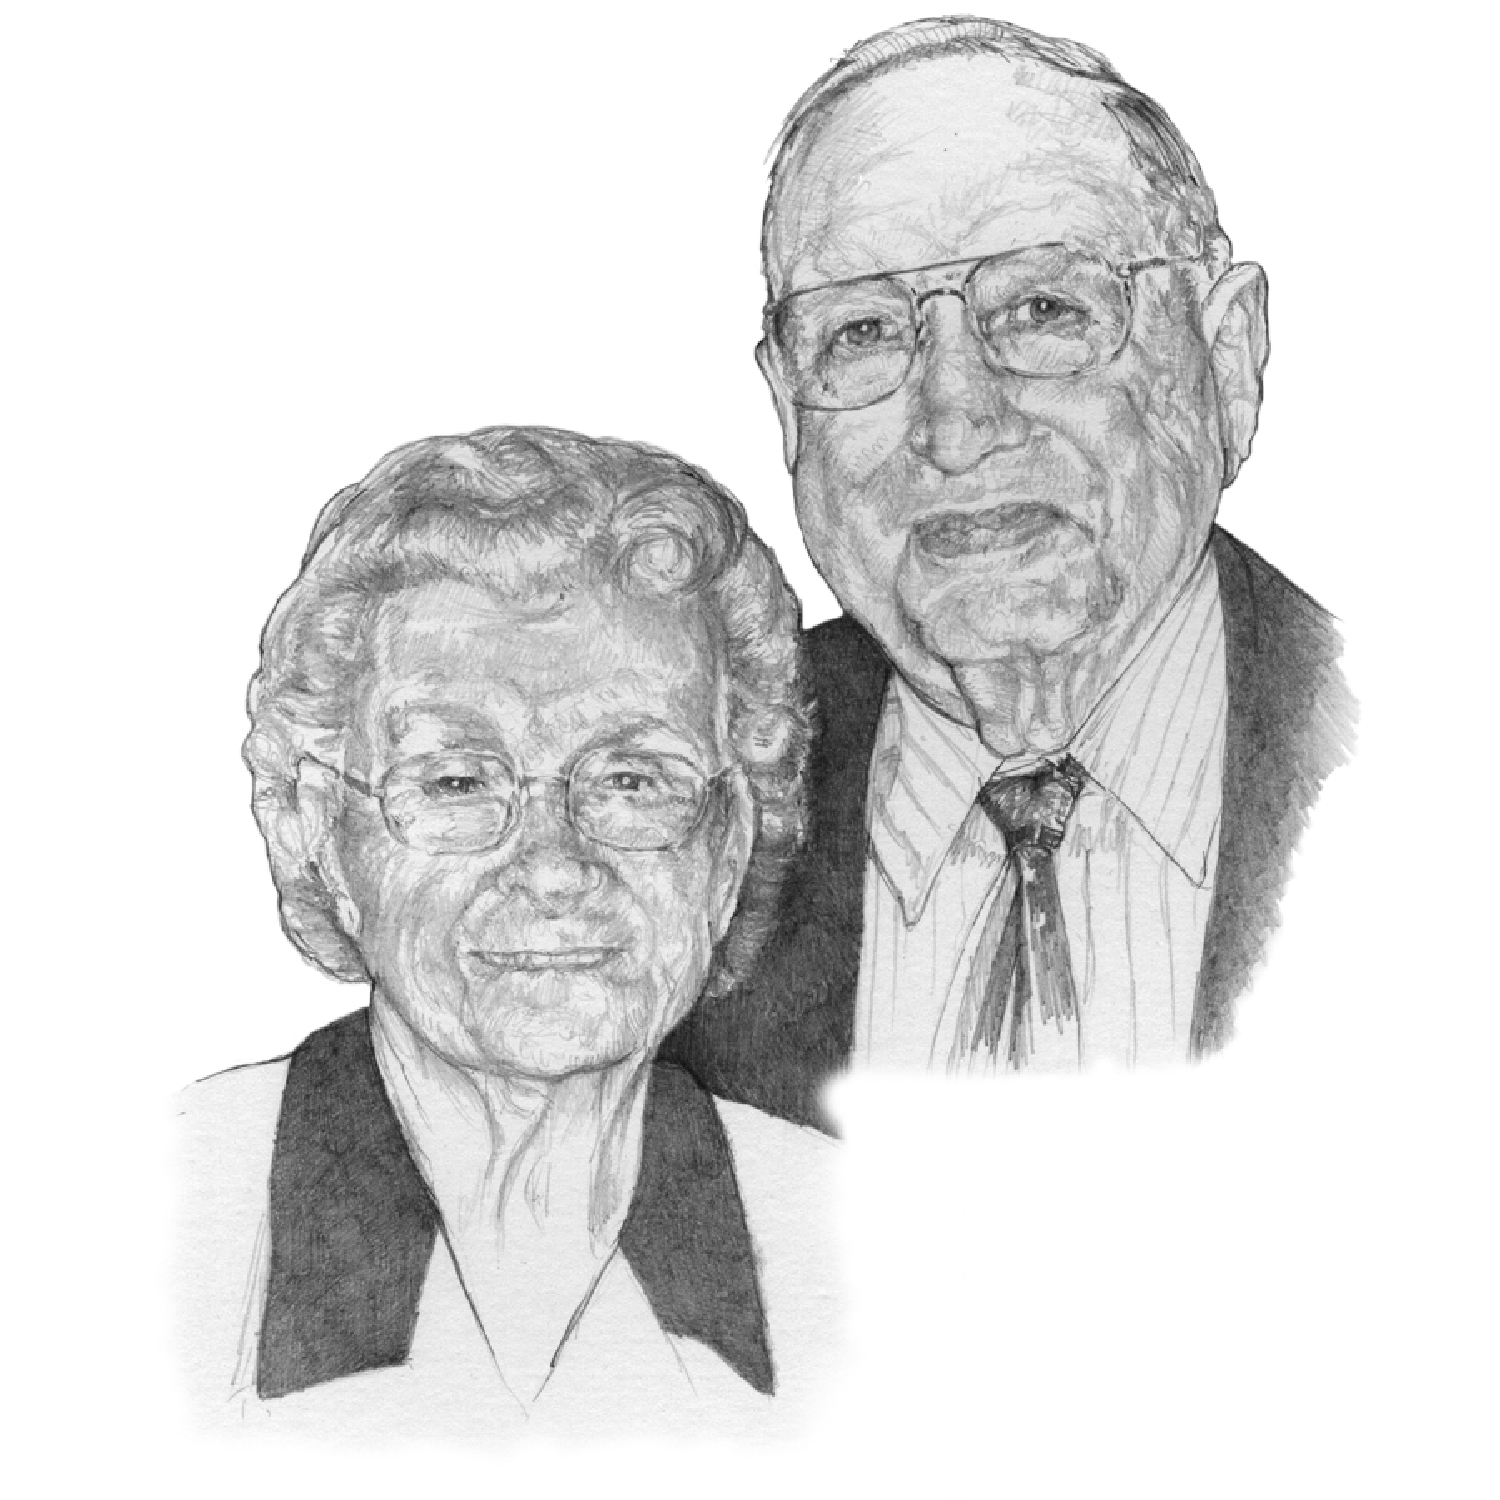 Harold and Pat Carswell